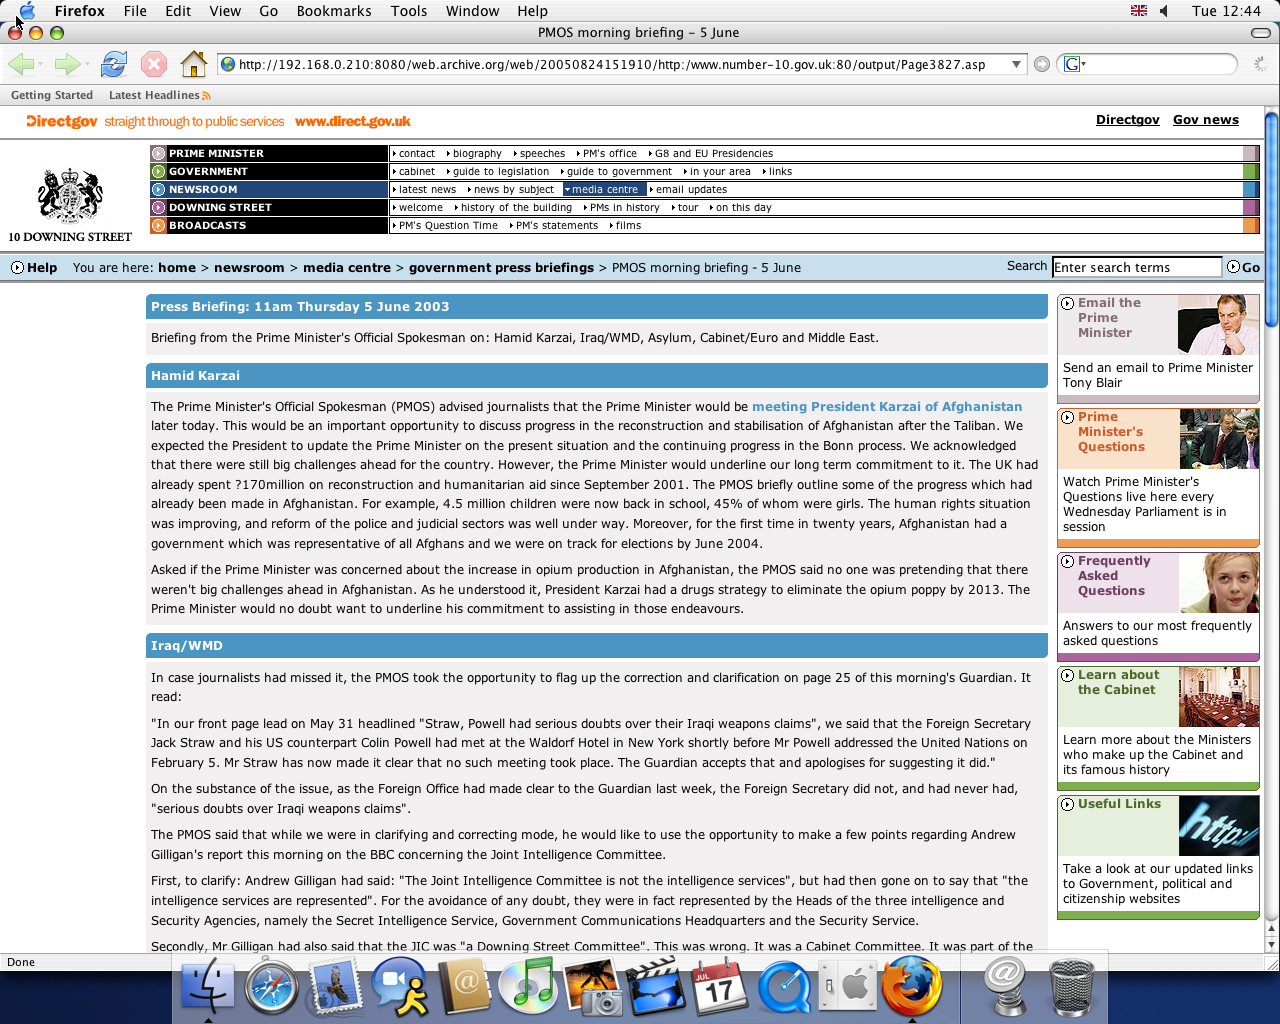 OS X 10.3 PPC with Mozilla Firefox 1.0 displaying a page from Office of the Prime Minister archived at August 24, 2005 at 15:19:10